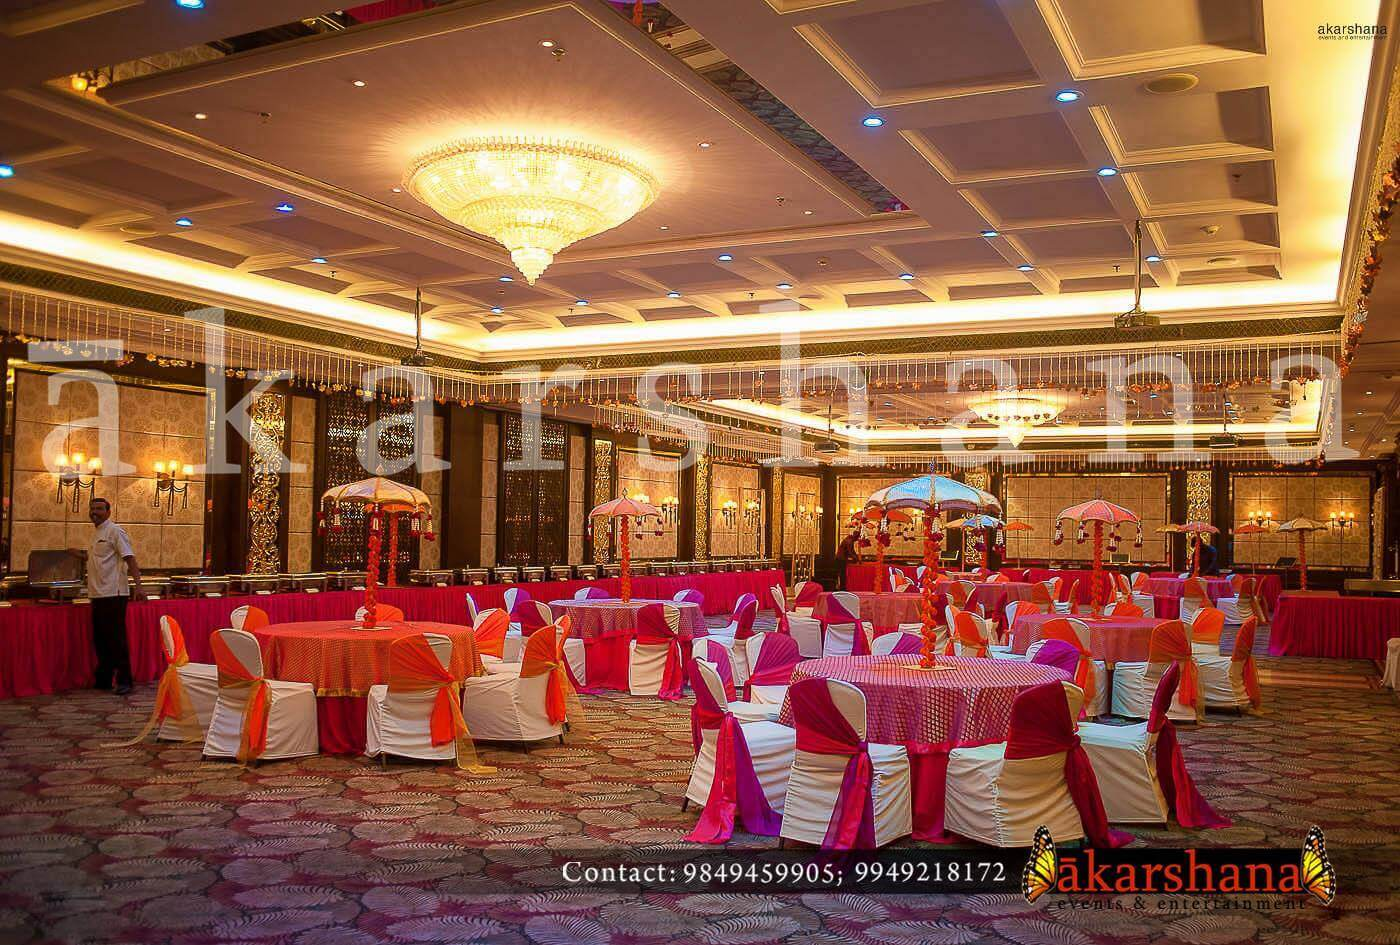 Akarshana Events and entertinment